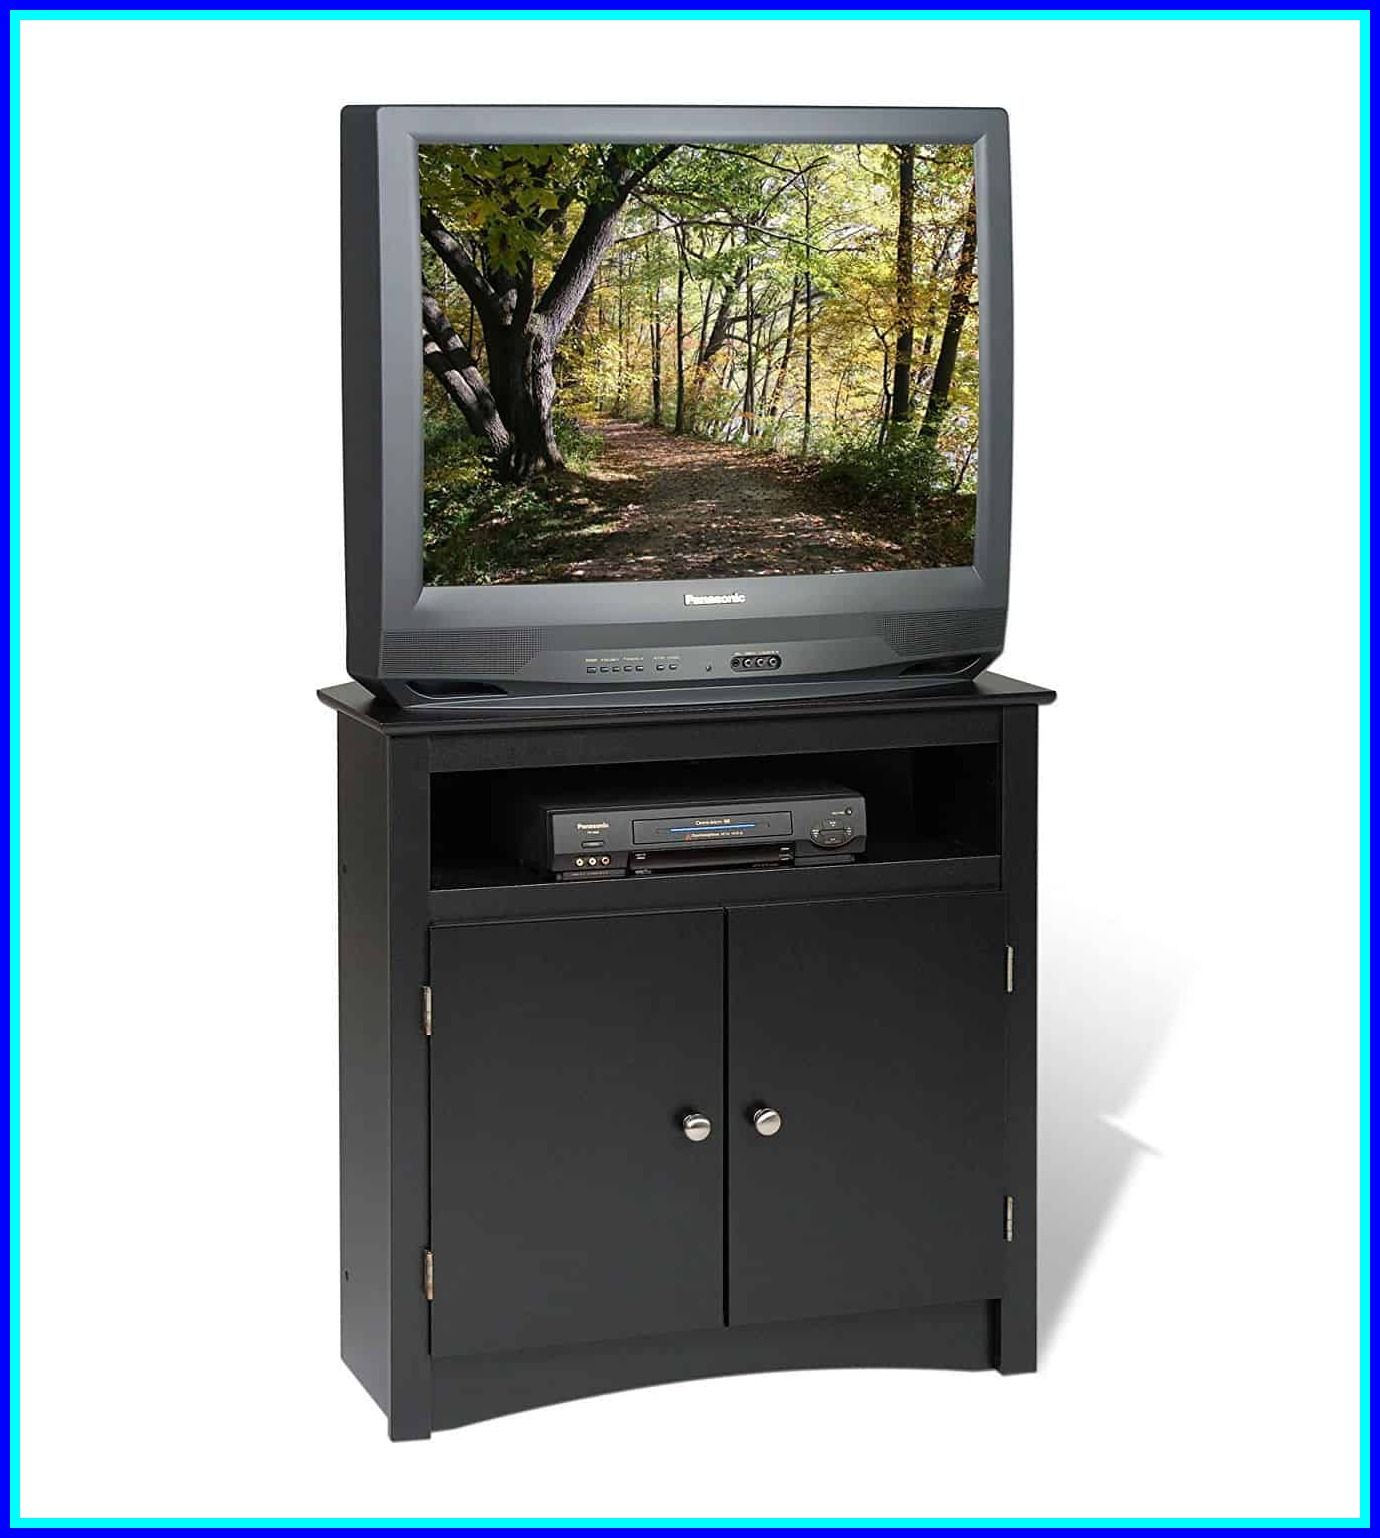 120 Reference Of Tv Stand Tv Forniture Small In 2020 High Tv Stand Small Corner Tv Stand Tv Stand